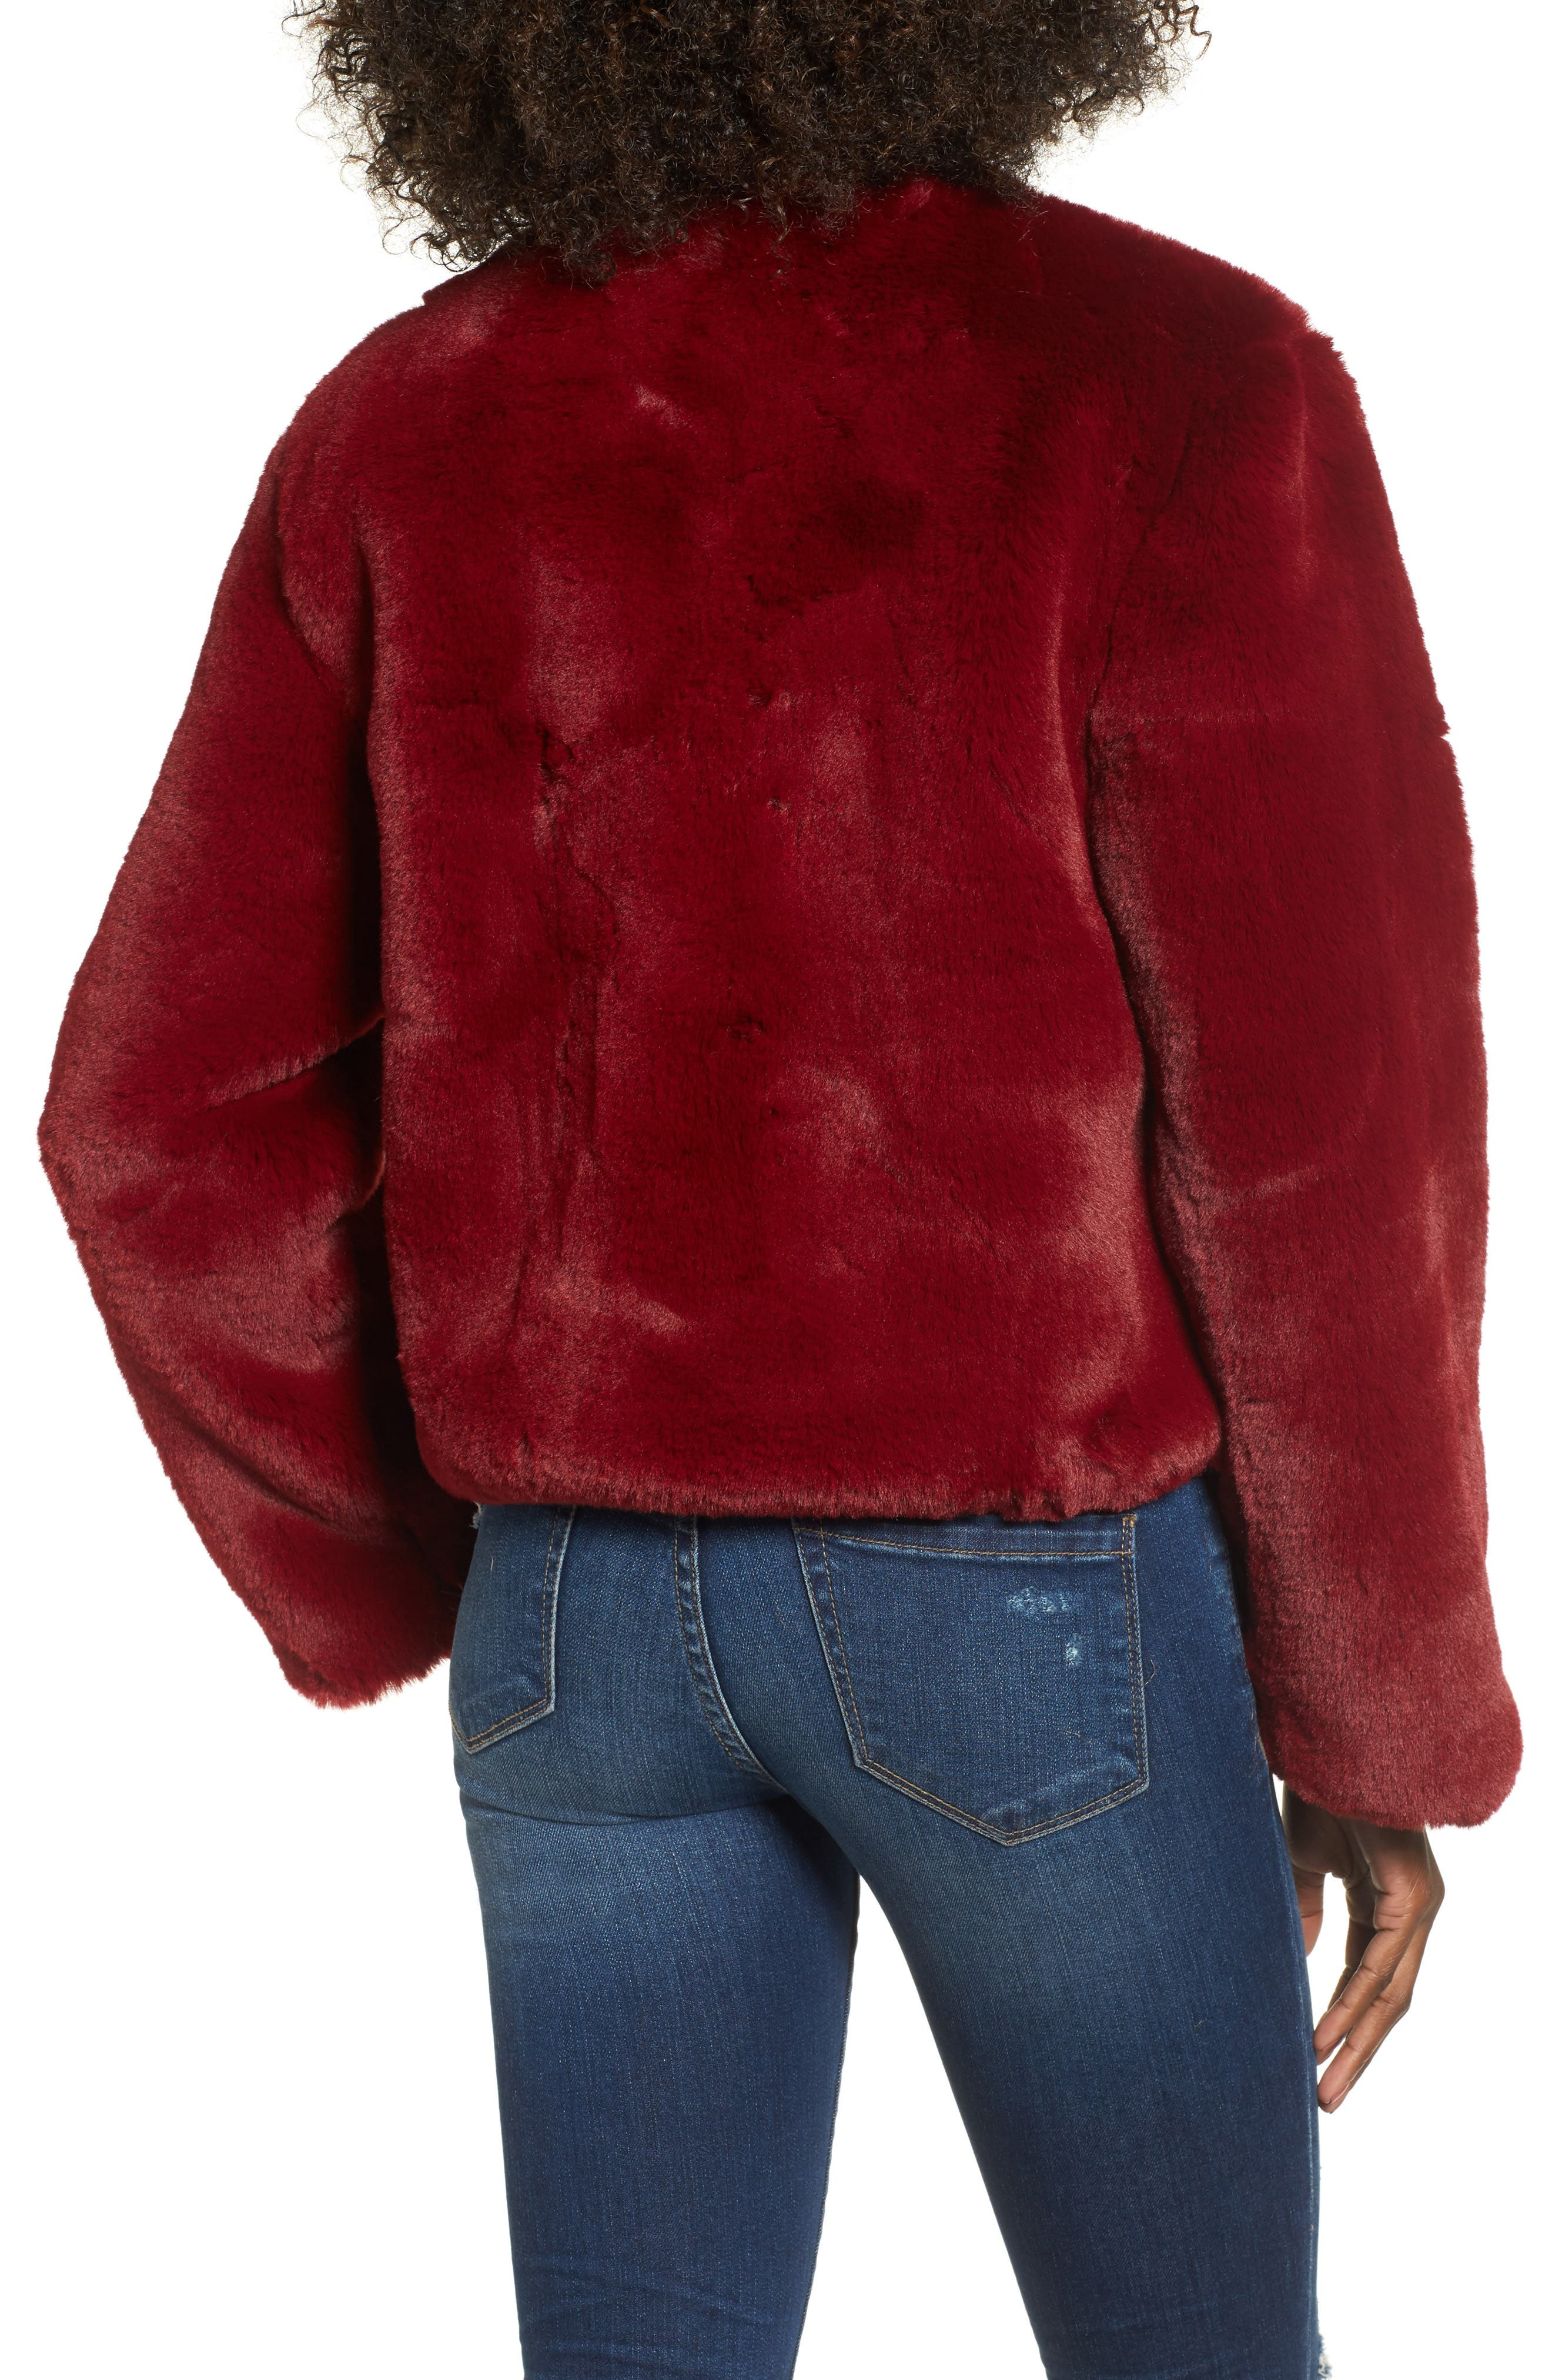 Lonely Hearts Faux Fur Jacket,                             Alternate thumbnail 2, color,                             Ruby